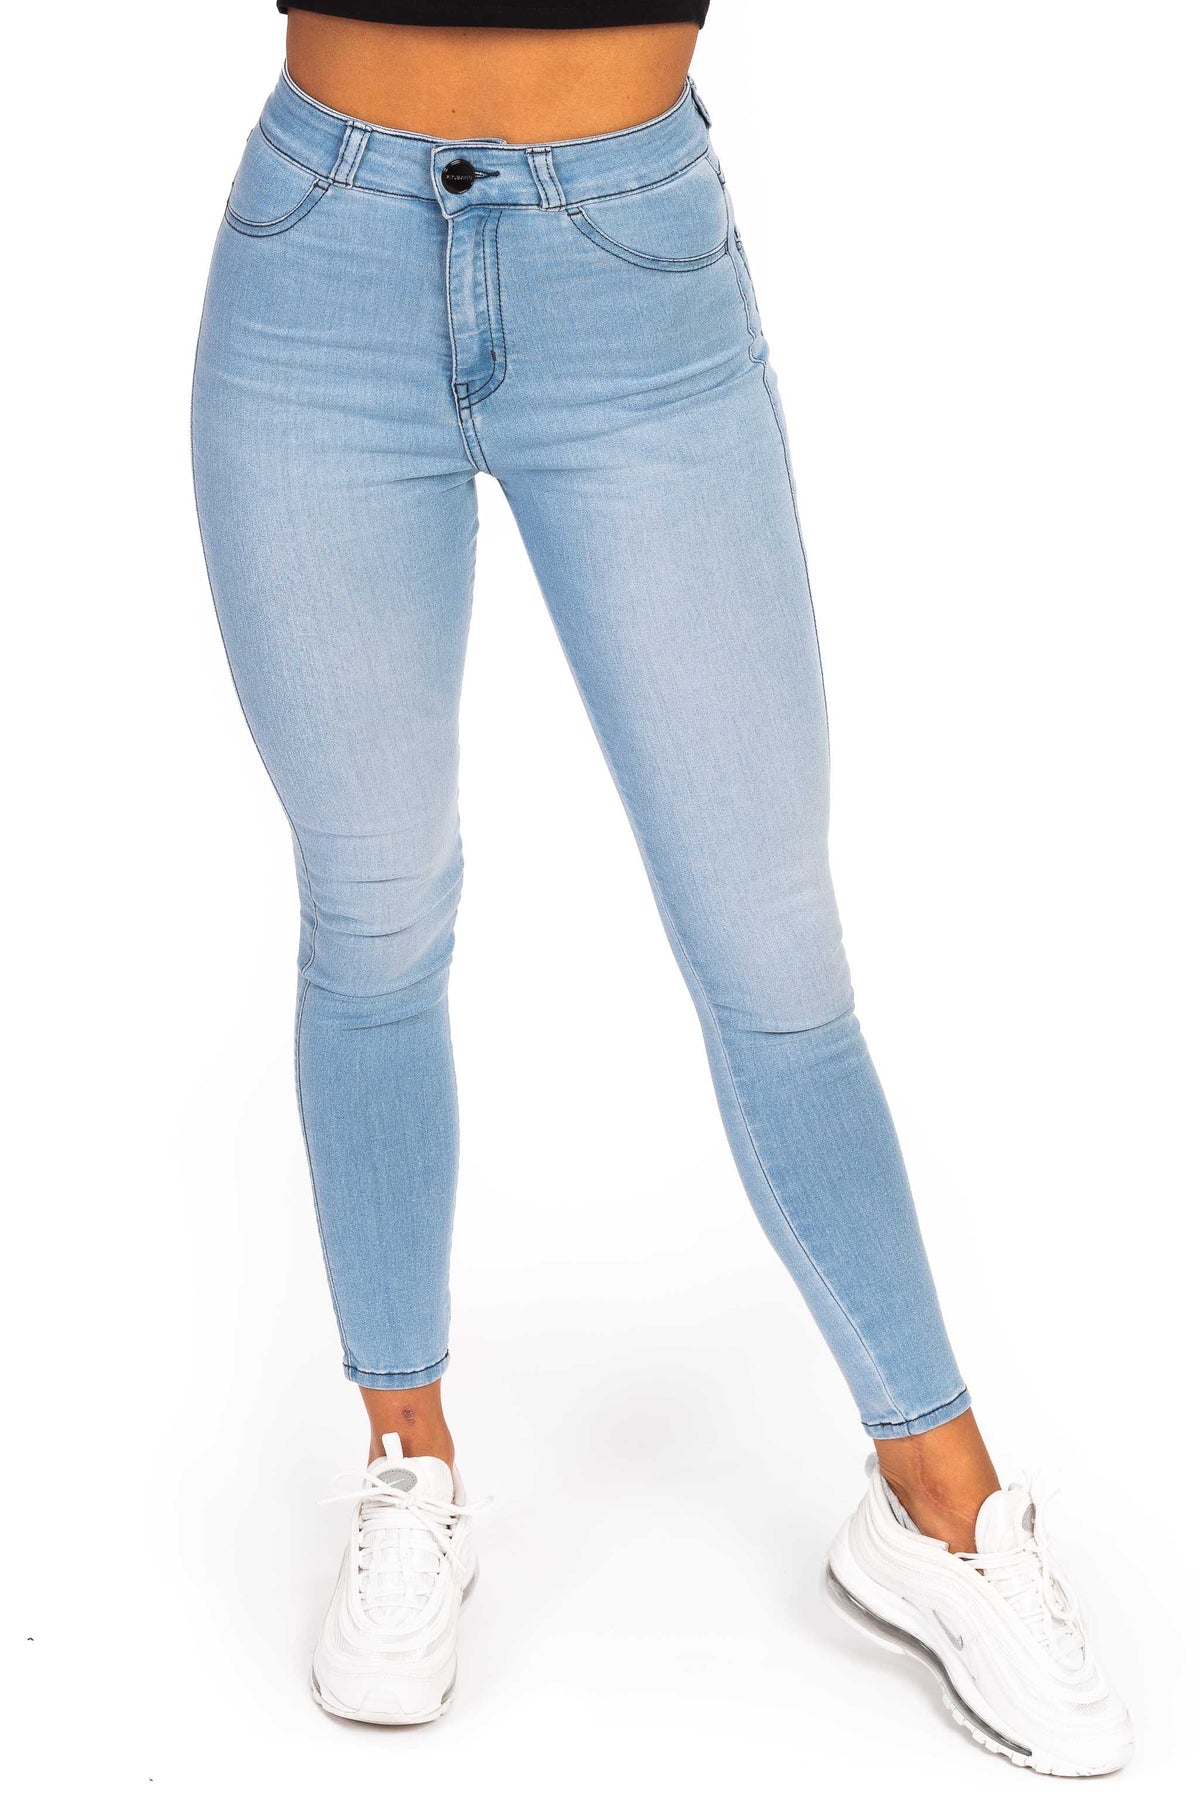 Womens Traditional High Waisted Fitjeans - Bleach Blue